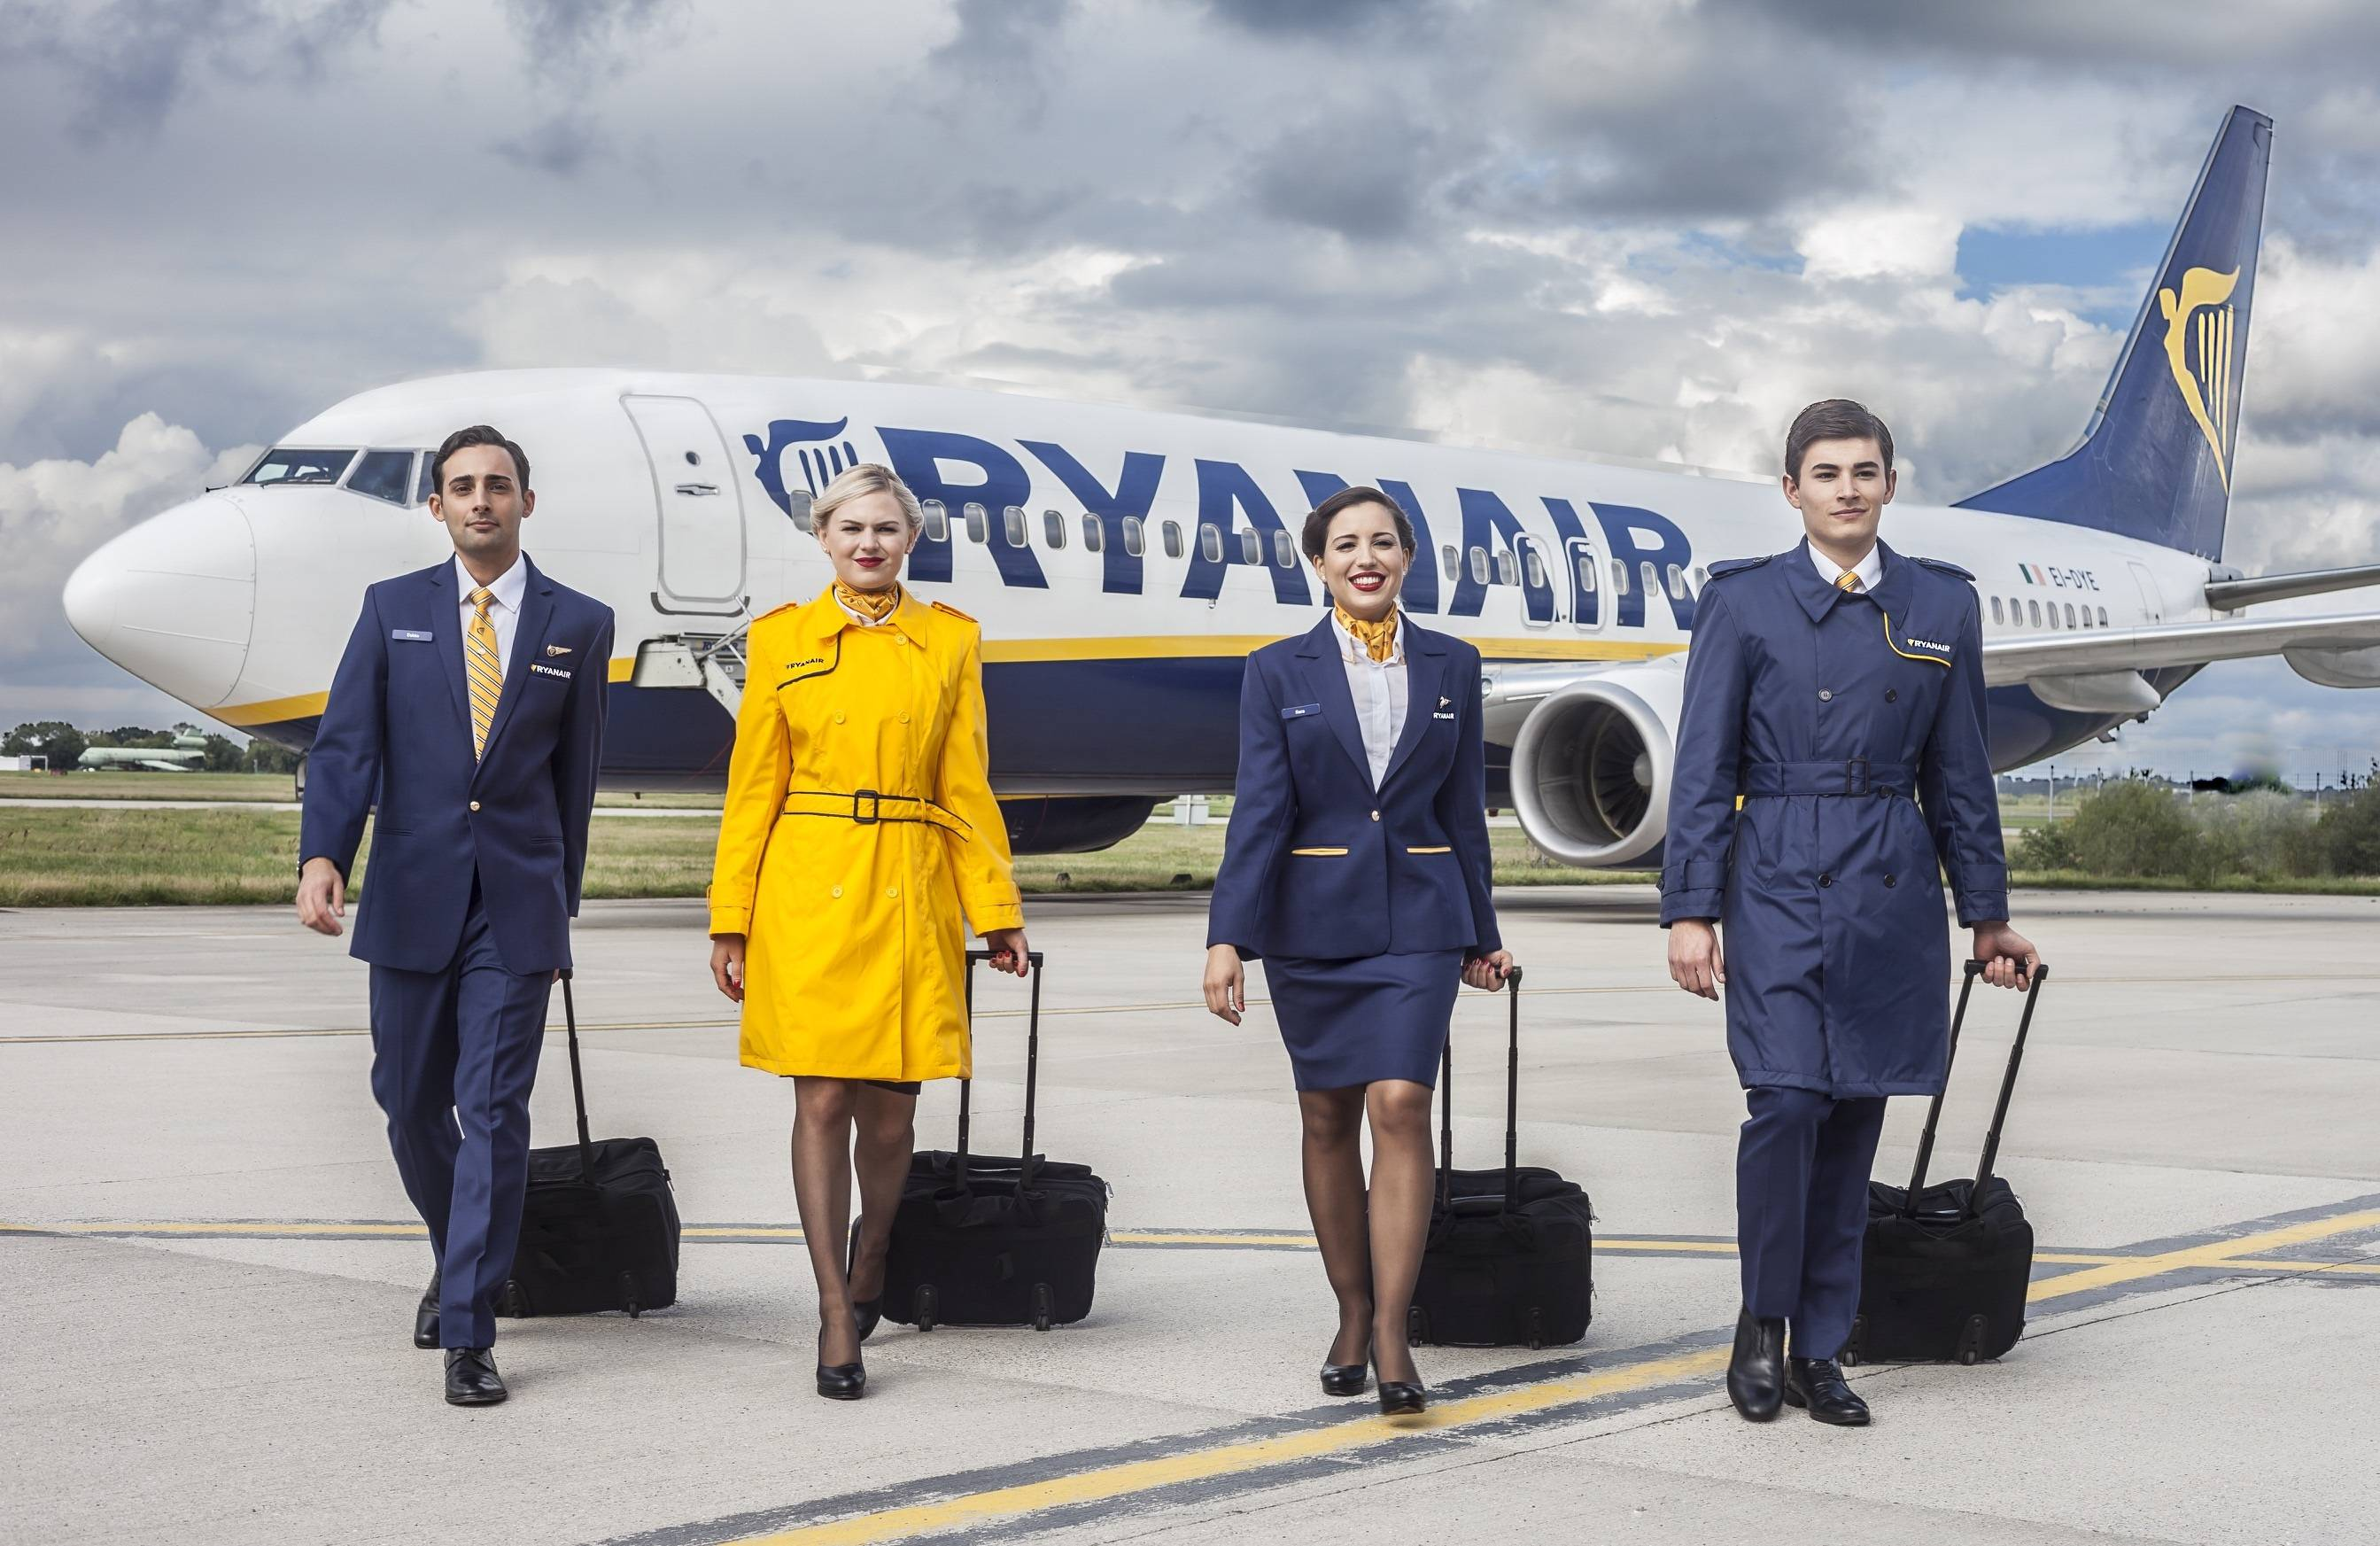 ryanair-uniform